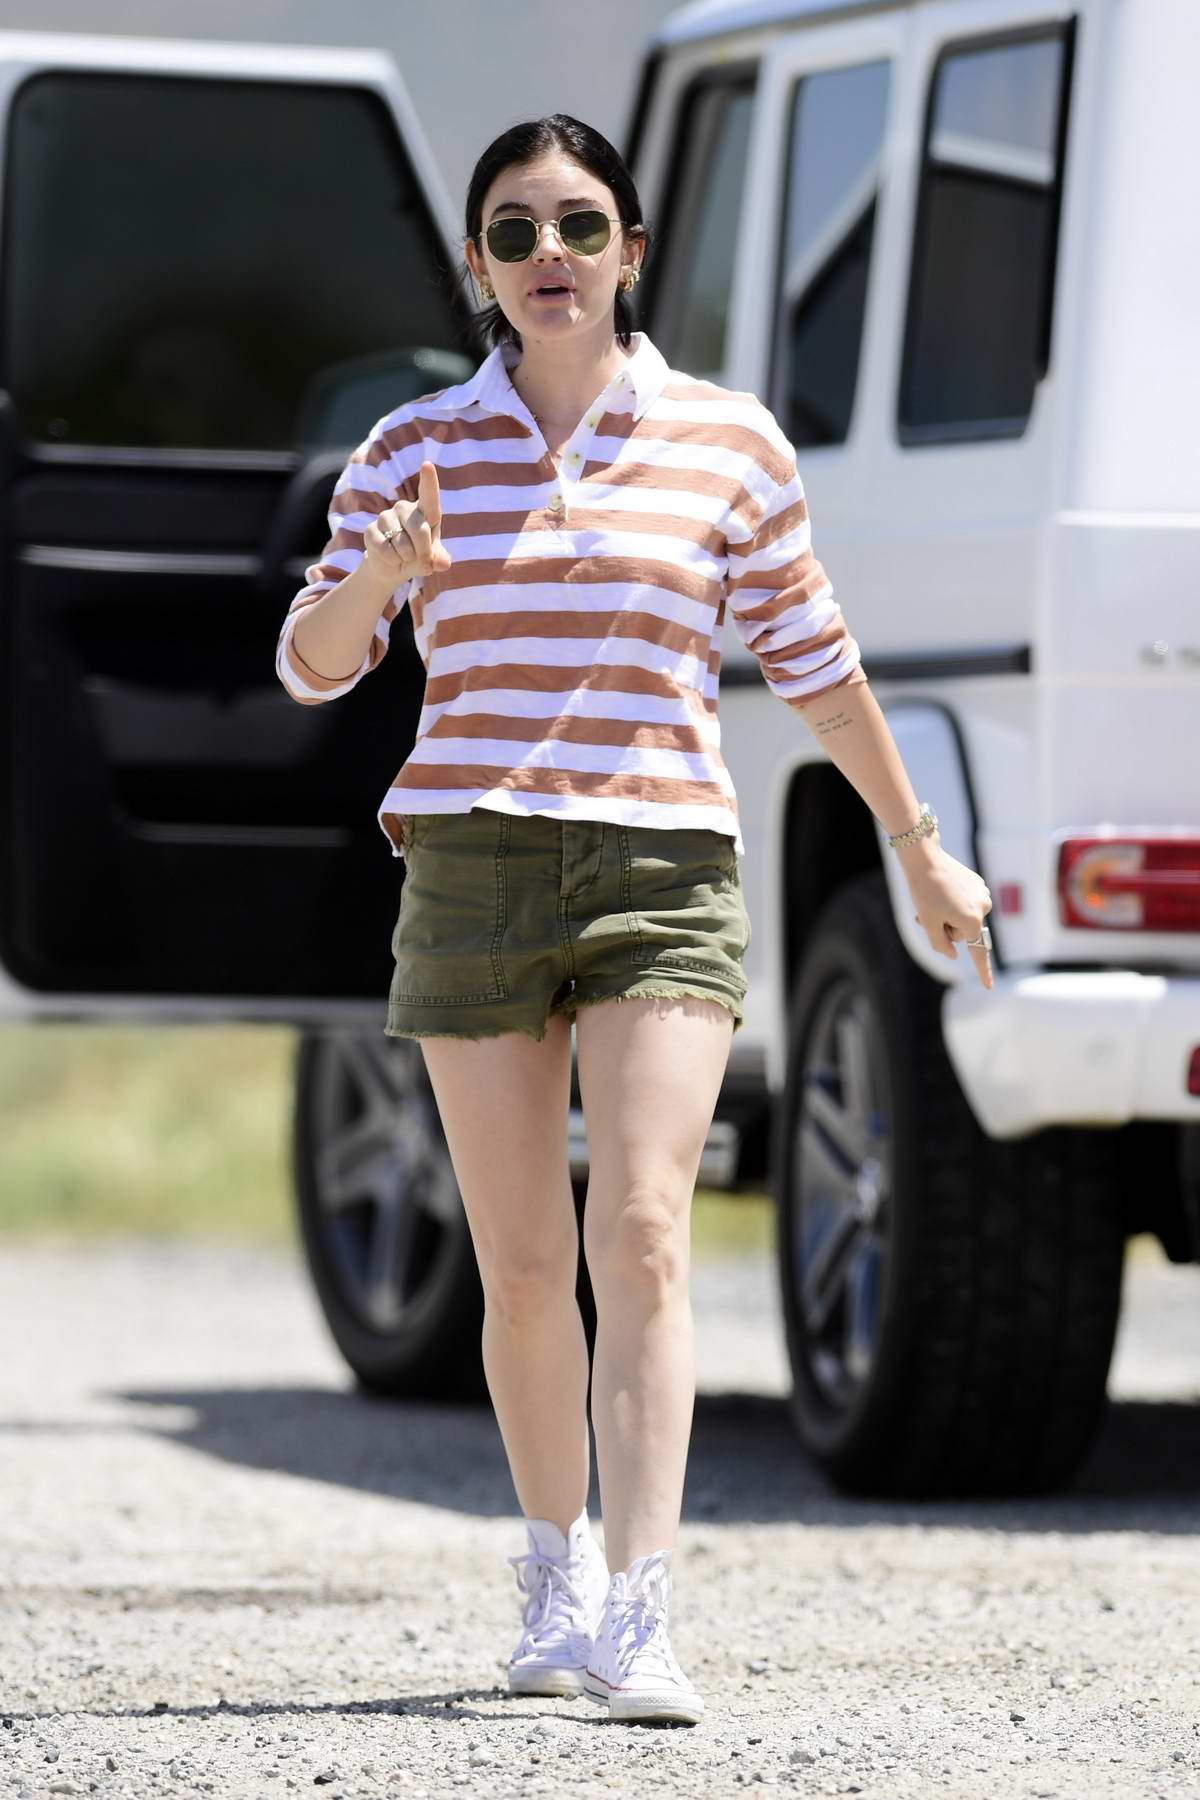 Lucy Hale sports a striped polo shirt and denim shorts while out in Los Angeles